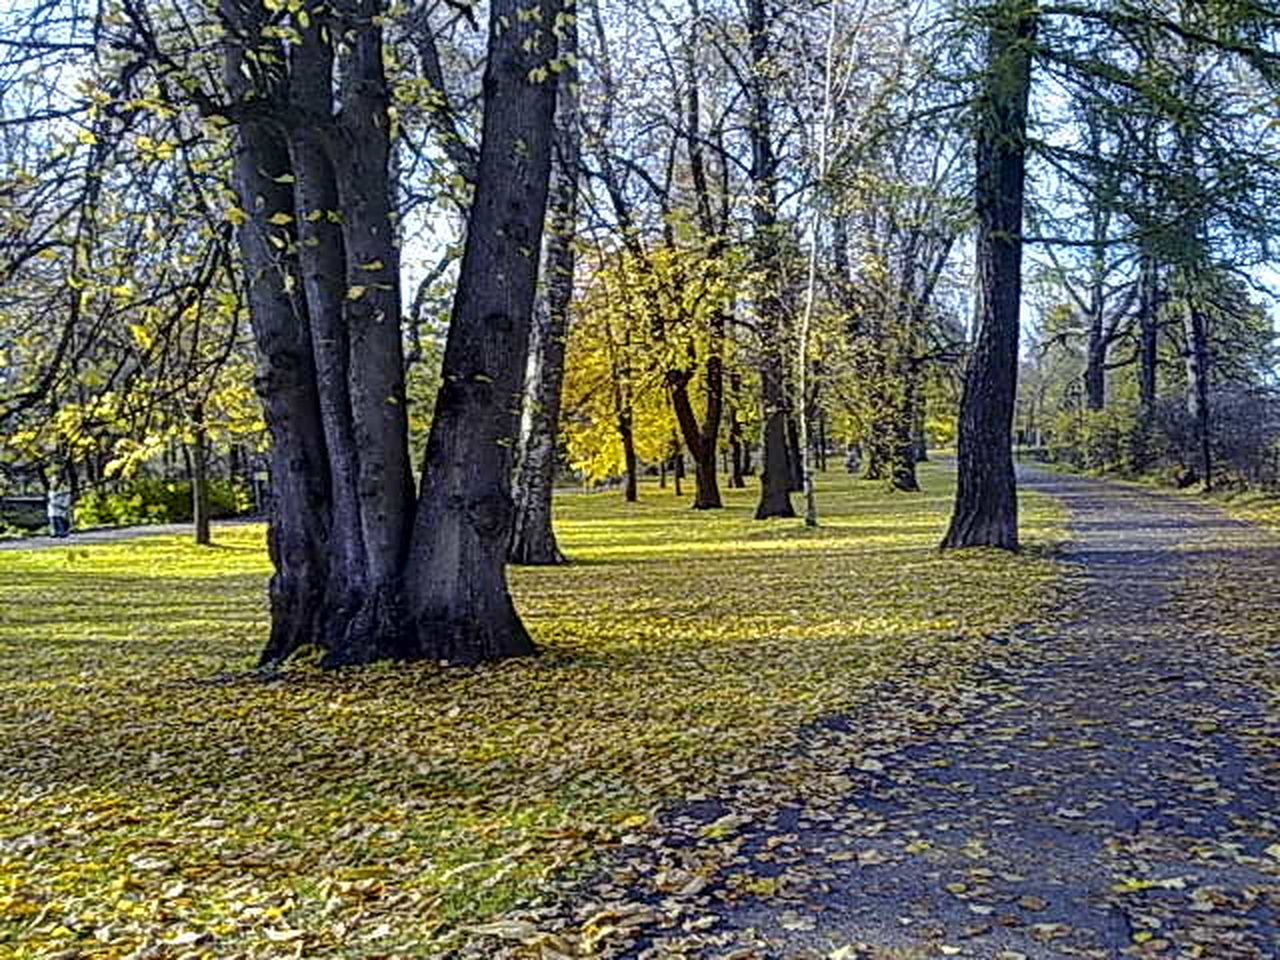 tree, autumn, nature, tranquility, beauty in nature, scenics, change, growth, grass, tranquil scene, outdoors, leaf, tree trunk, yellow, landscape, day, no people, branch, sky